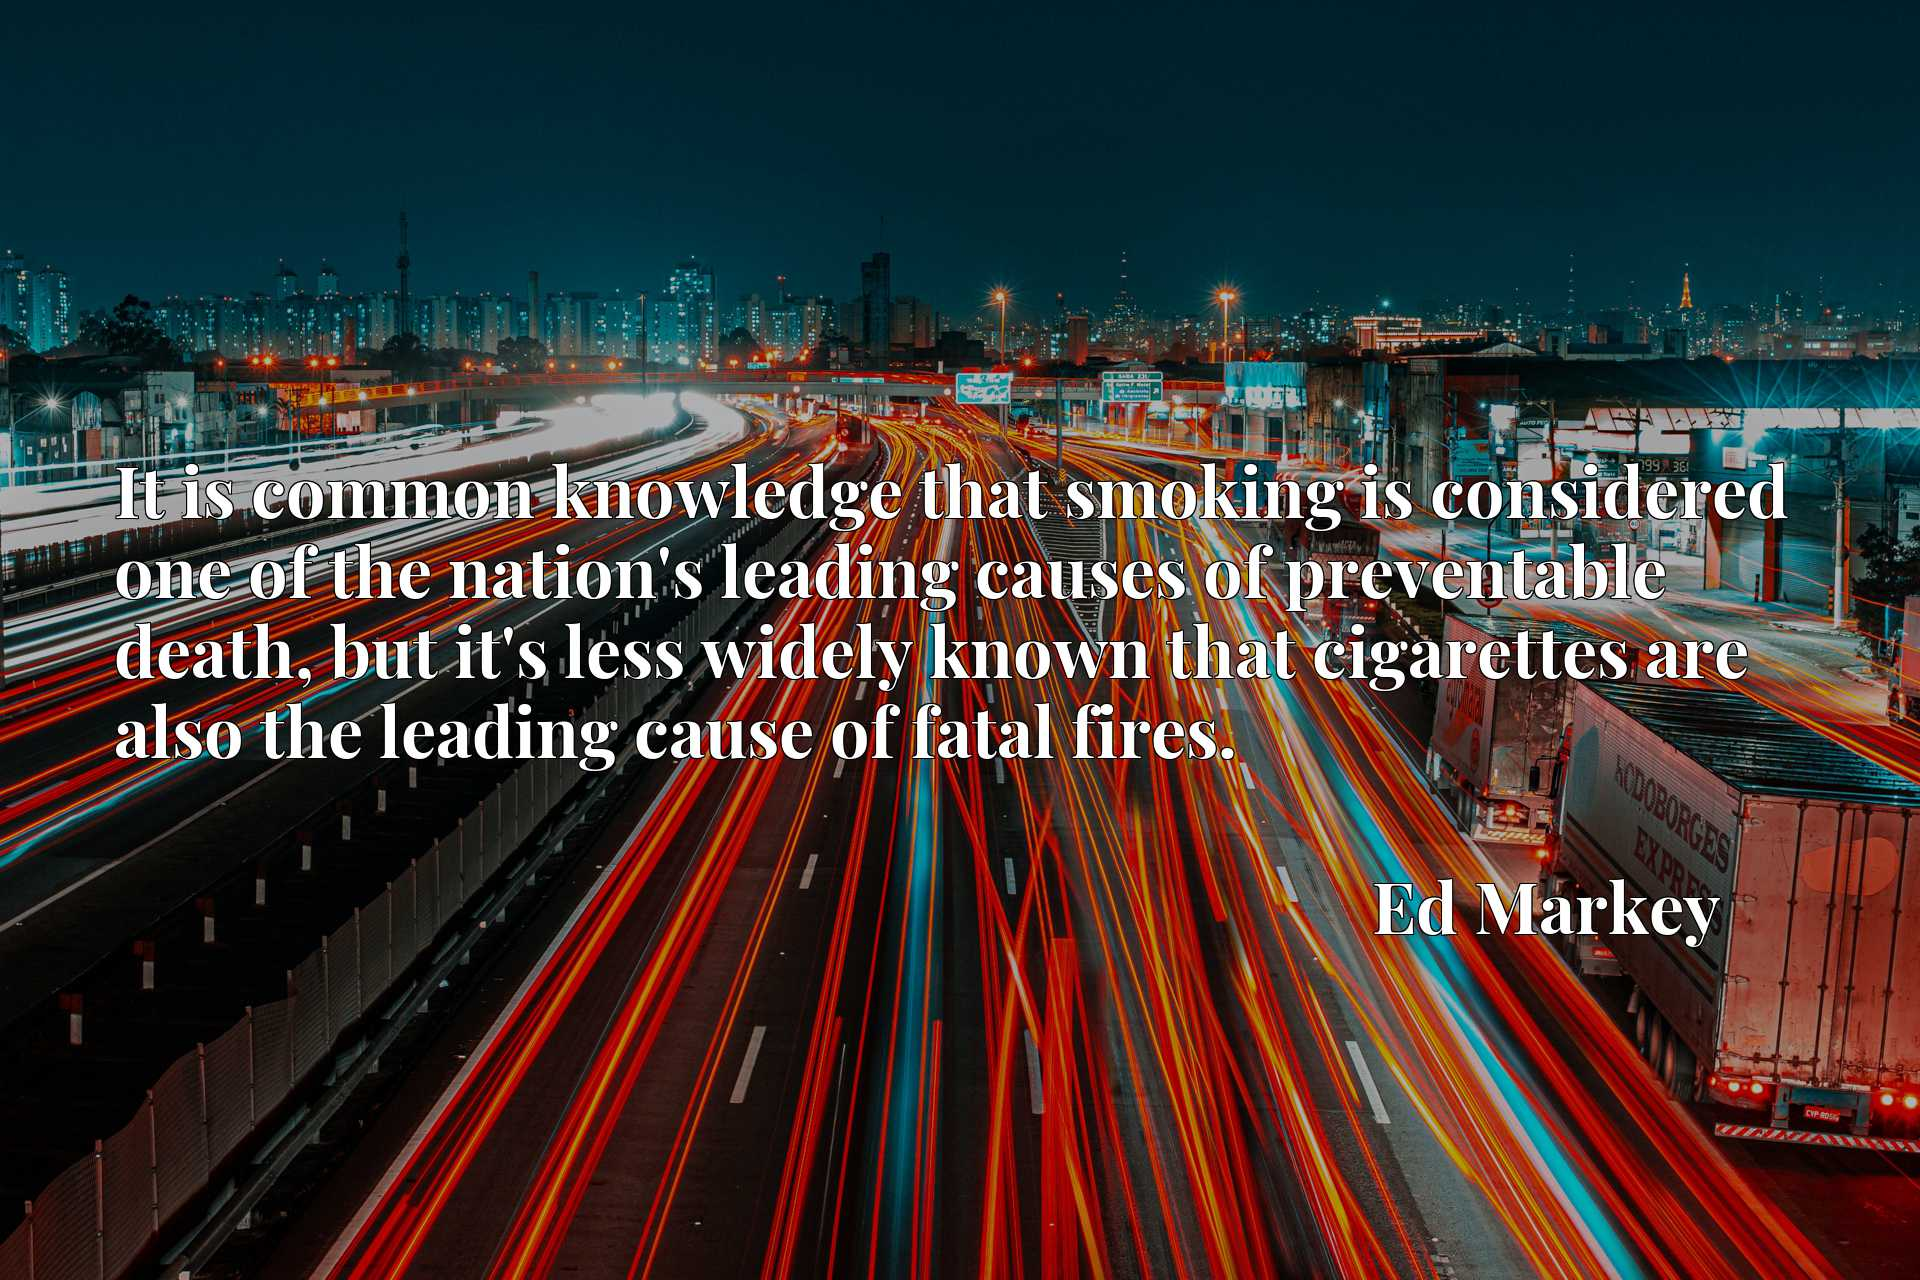 Quote Picture :It is common knowledge that smoking is considered one of the nation's leading causes of preventable death, but it's less widely known that cigarettes are also the leading cause of fatal fires.